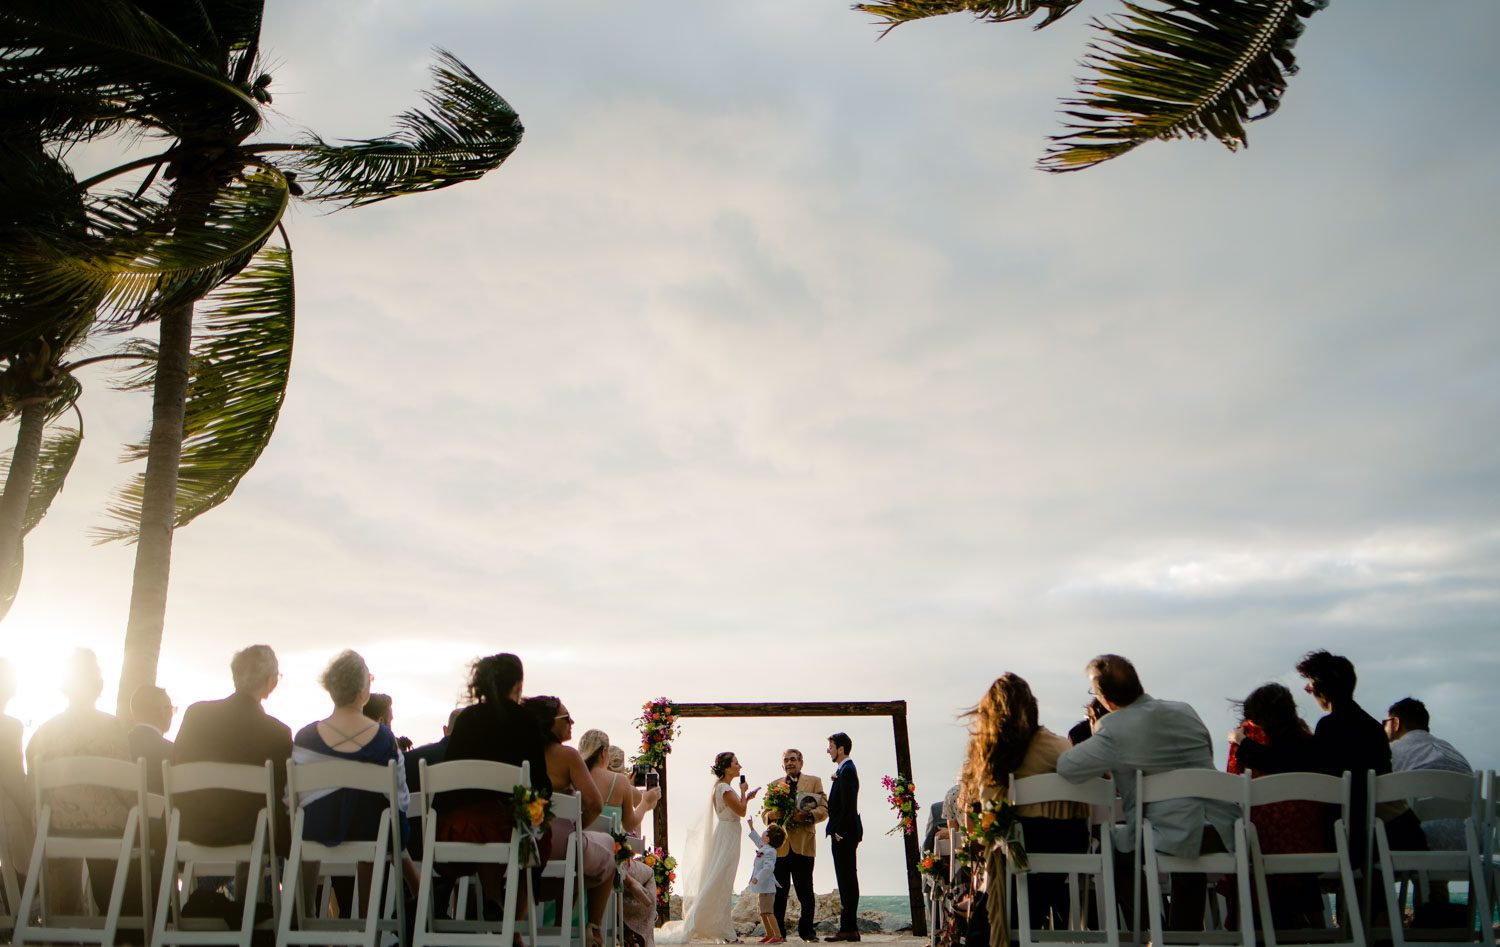 Outdoor Key West Wedding During Sunset In Florida